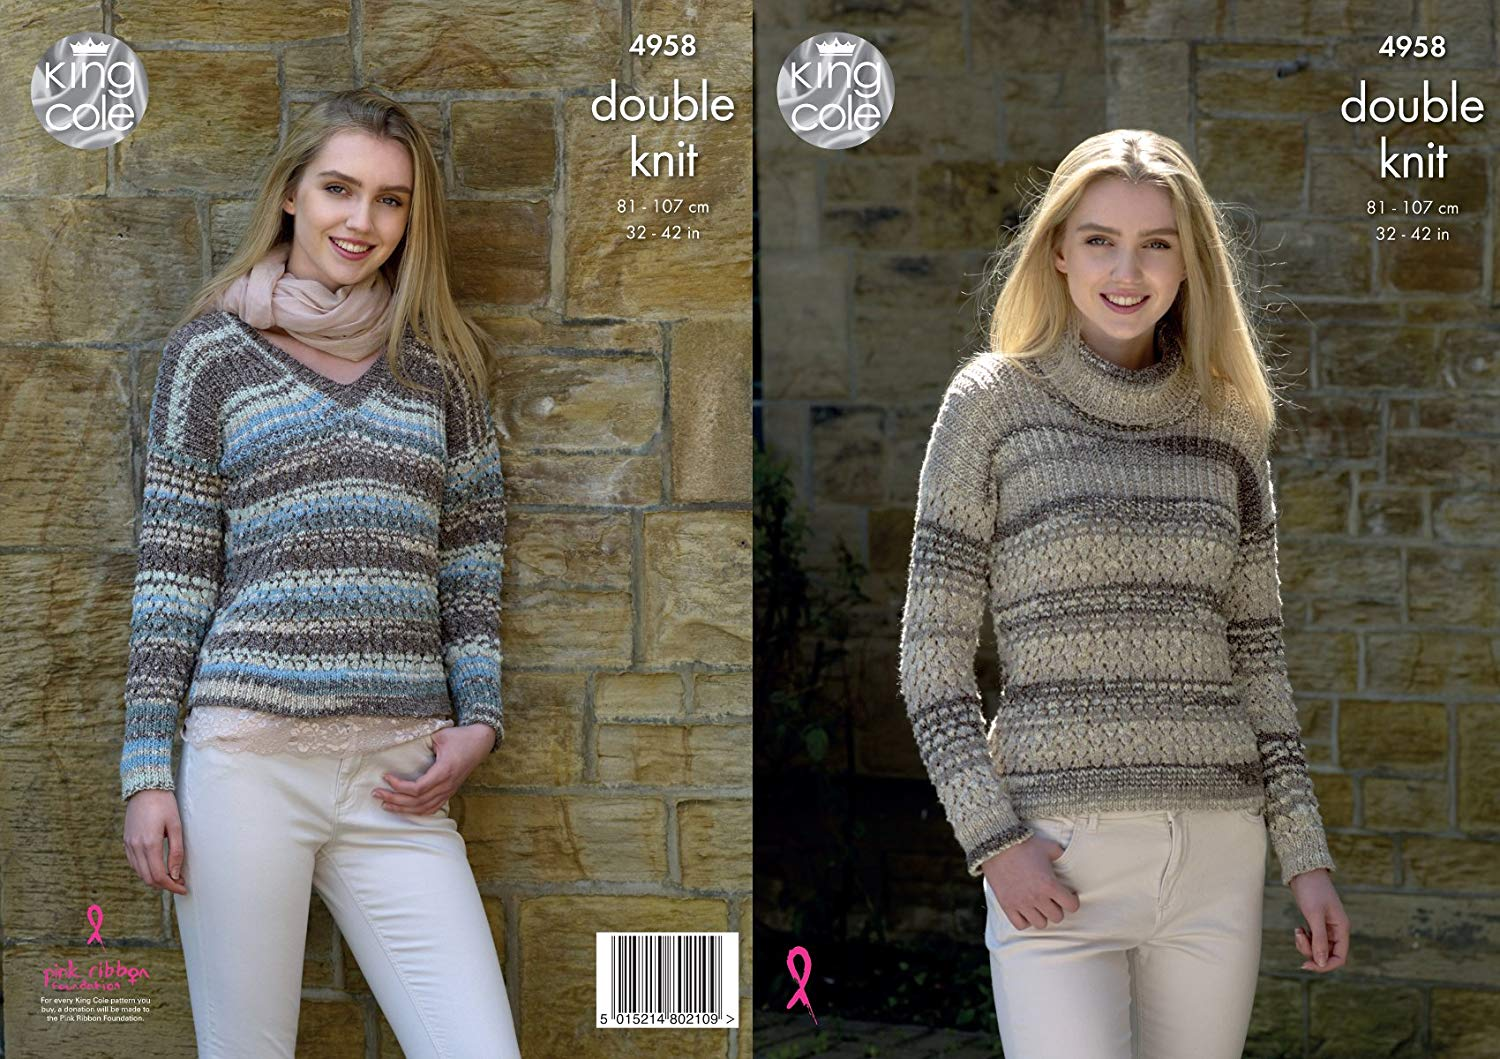 c20b9b53f Get Quotations · King Cole Ladies Double Knitting Pattern Womens V or Polo  Neck Lacy Sweater (4958)